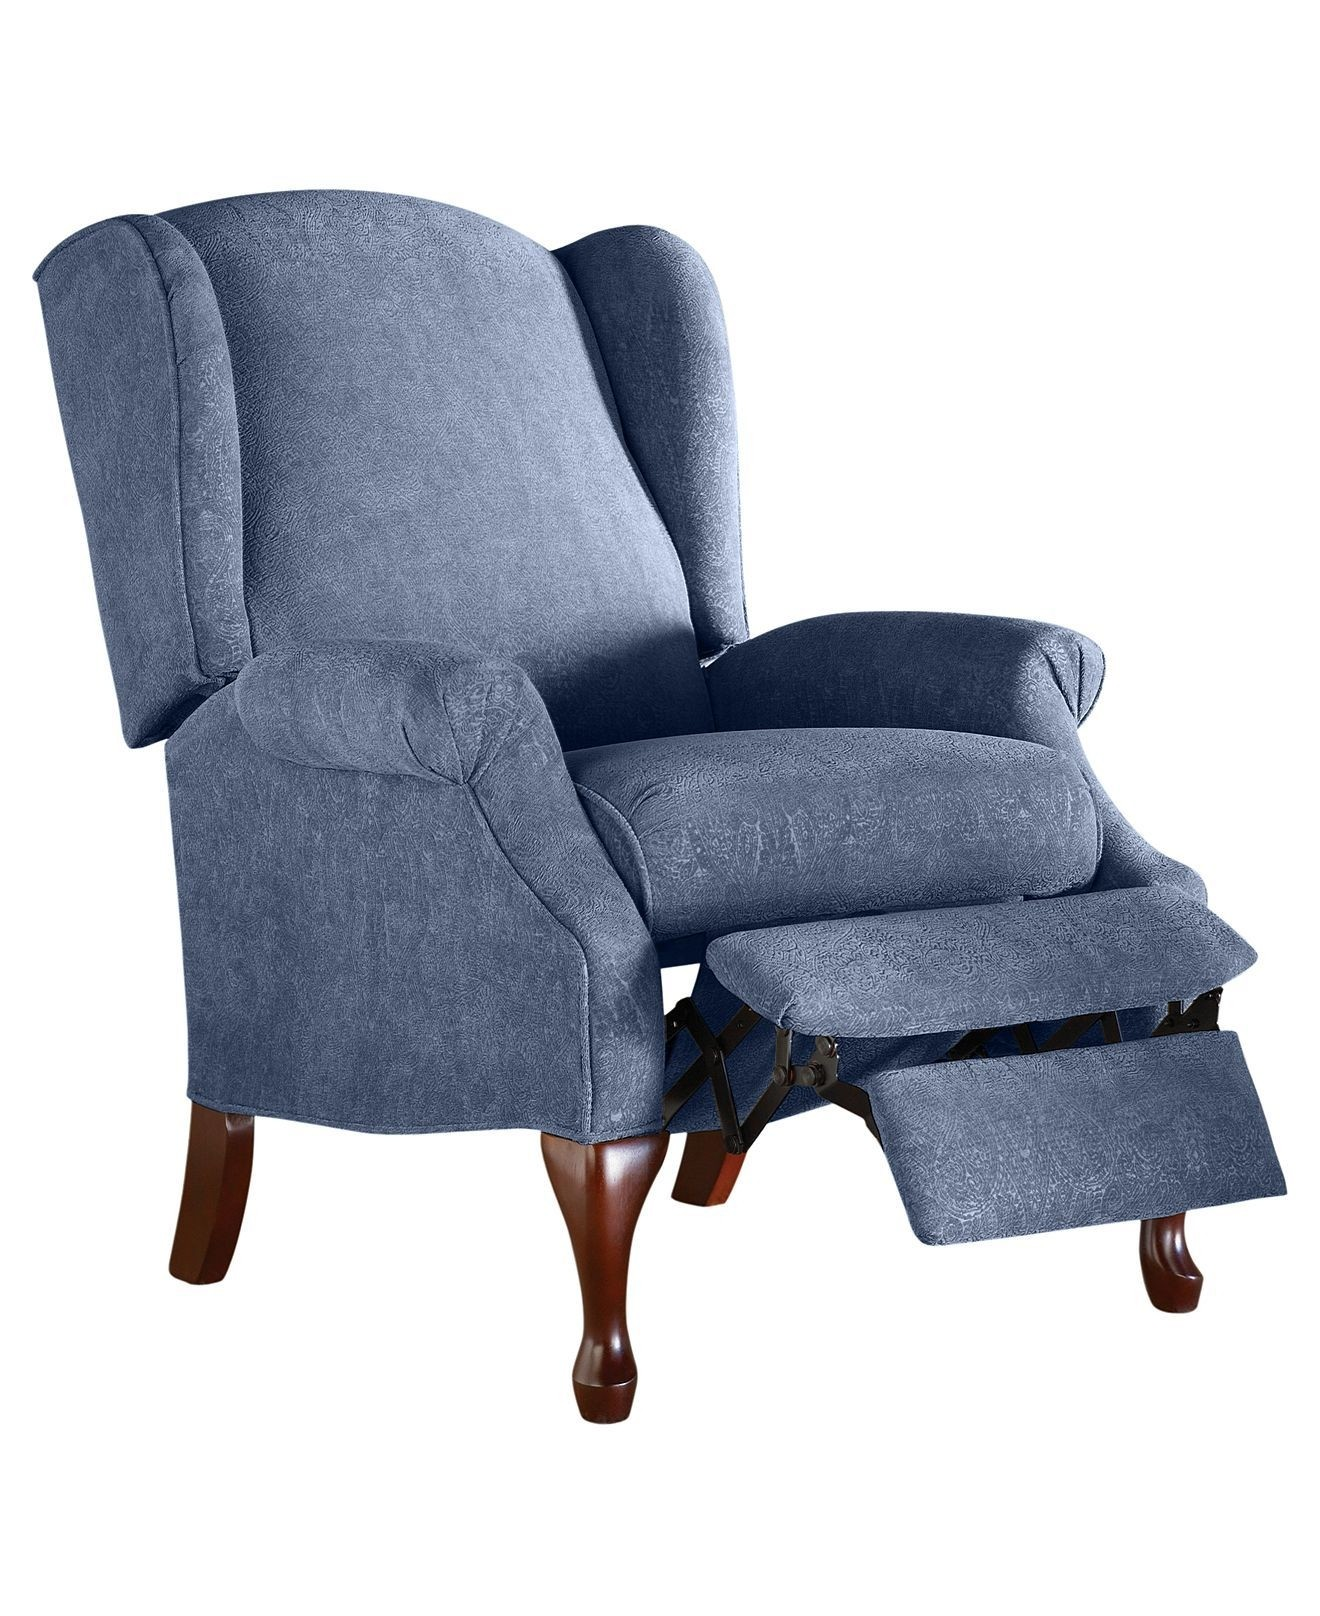 Queen Anne Recliner Chairs